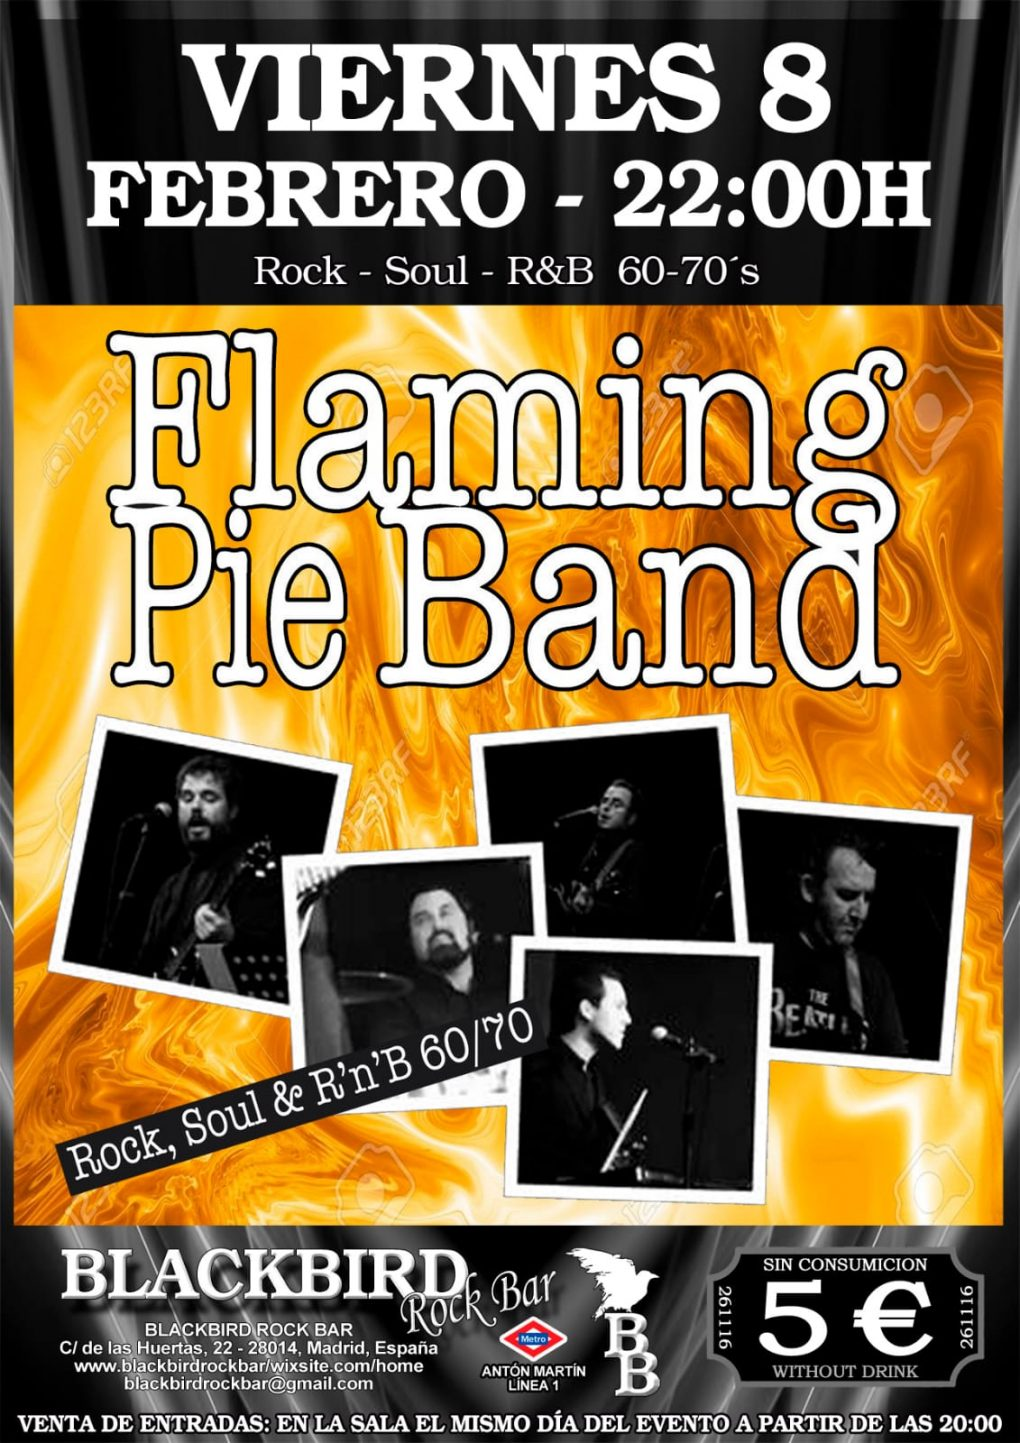 FLAMING PIE BAND BANDA VERSIONES POP ROCK SOUL 60 70 MADRID BLACKBIRD